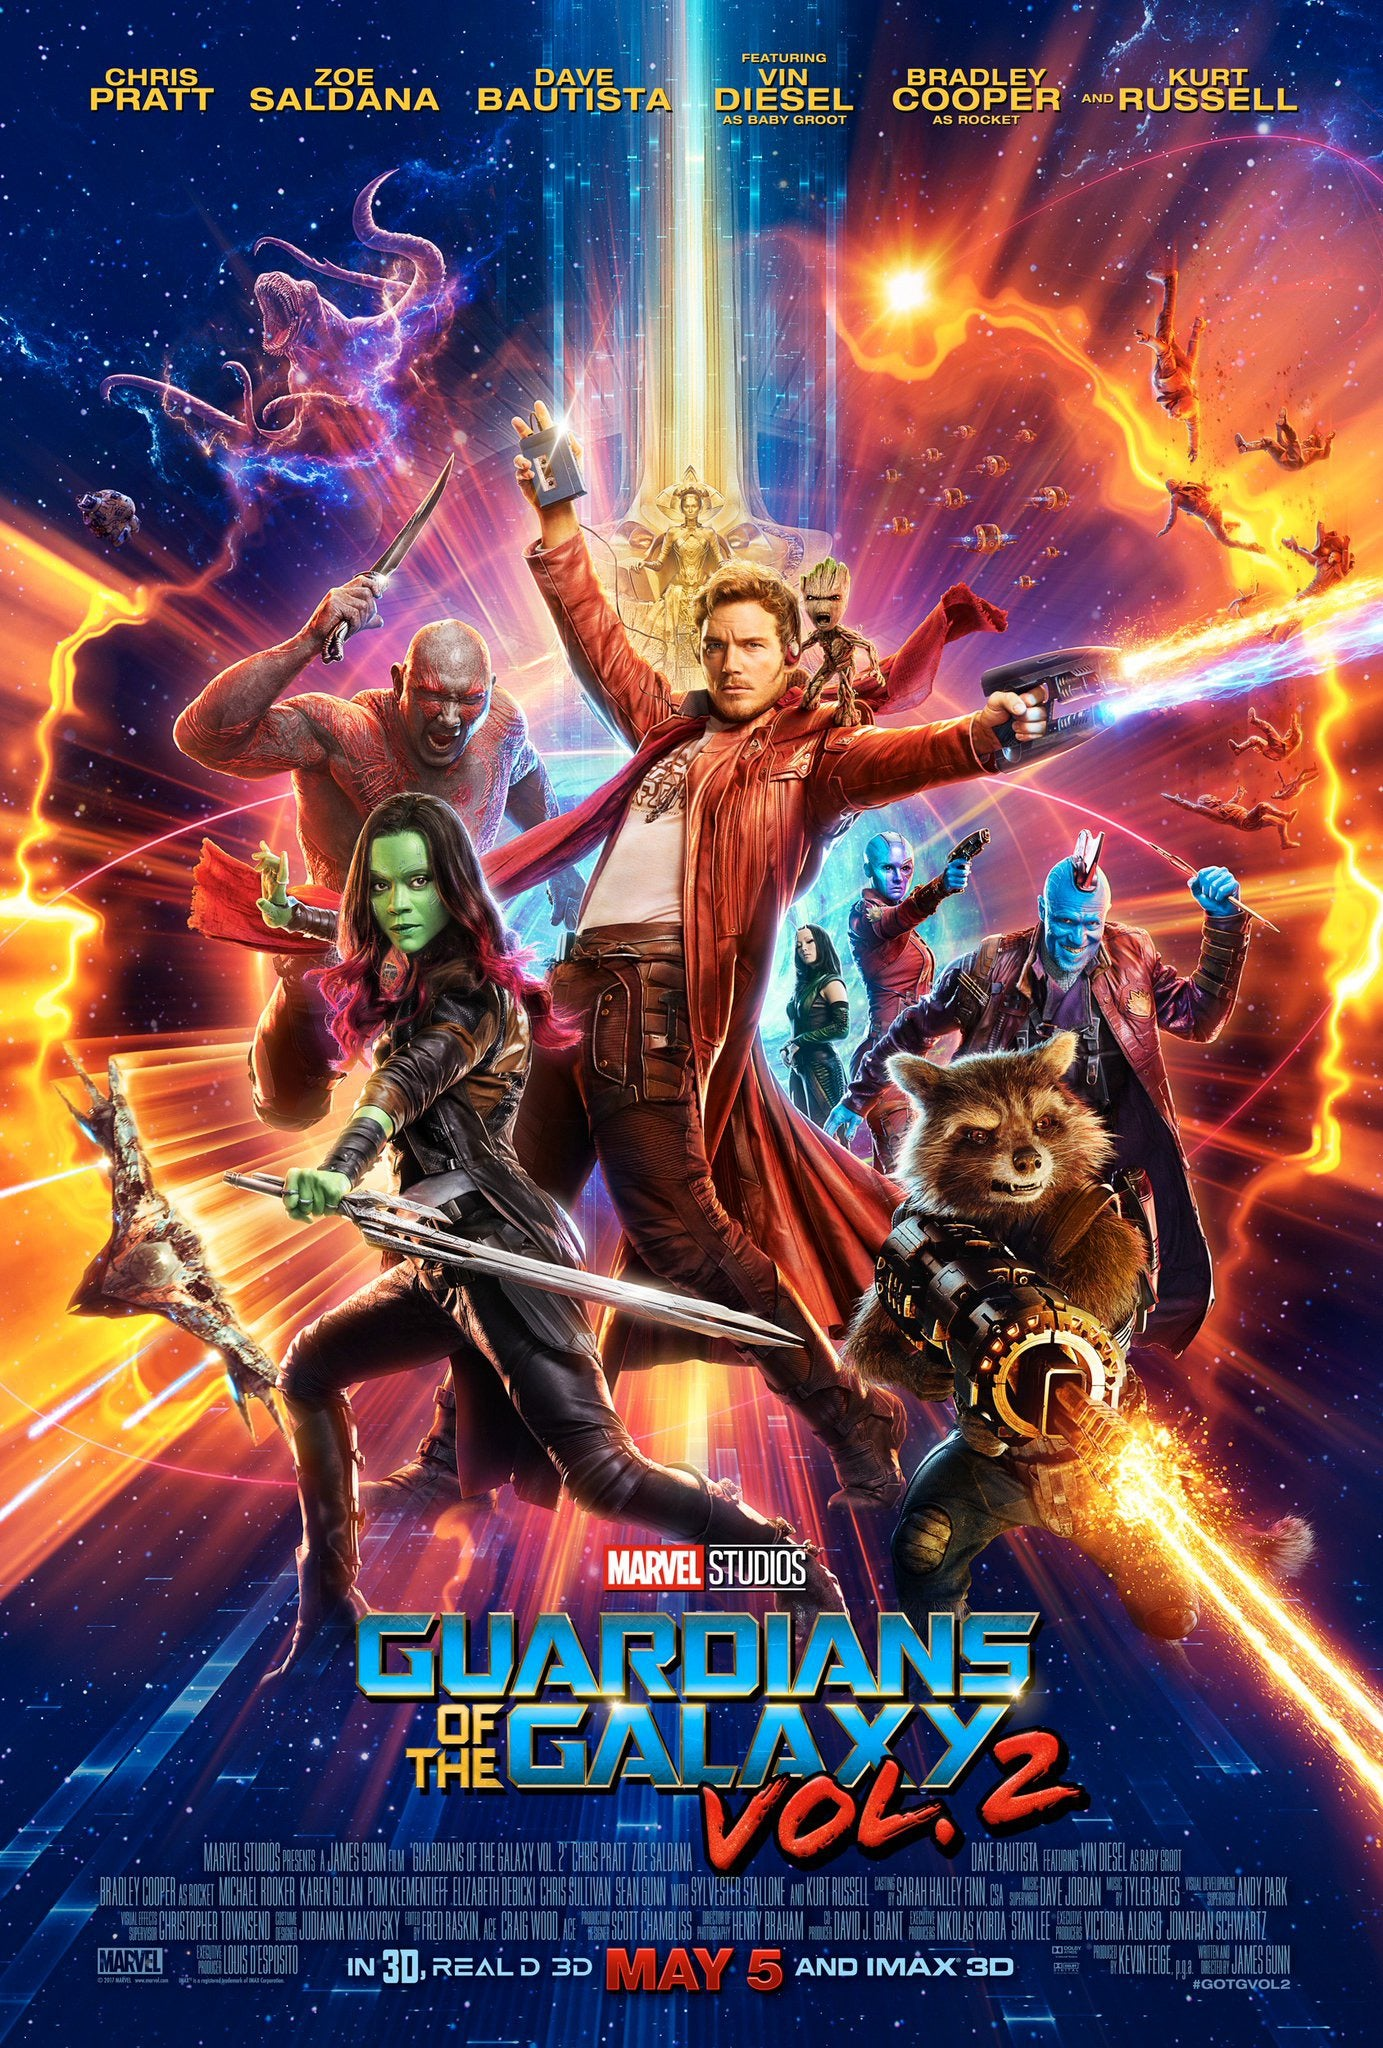 #10 Guardians of the Galaxy 2 - I love me an ensemble, and the Guardians are great. Now, full disclosure, I didn't care about Ego/Peter's arc. But, it got me to Rocket/Yondu & Peter/Yondu. And THAT hit me in the feels. Which is why it cracks the top 10. -